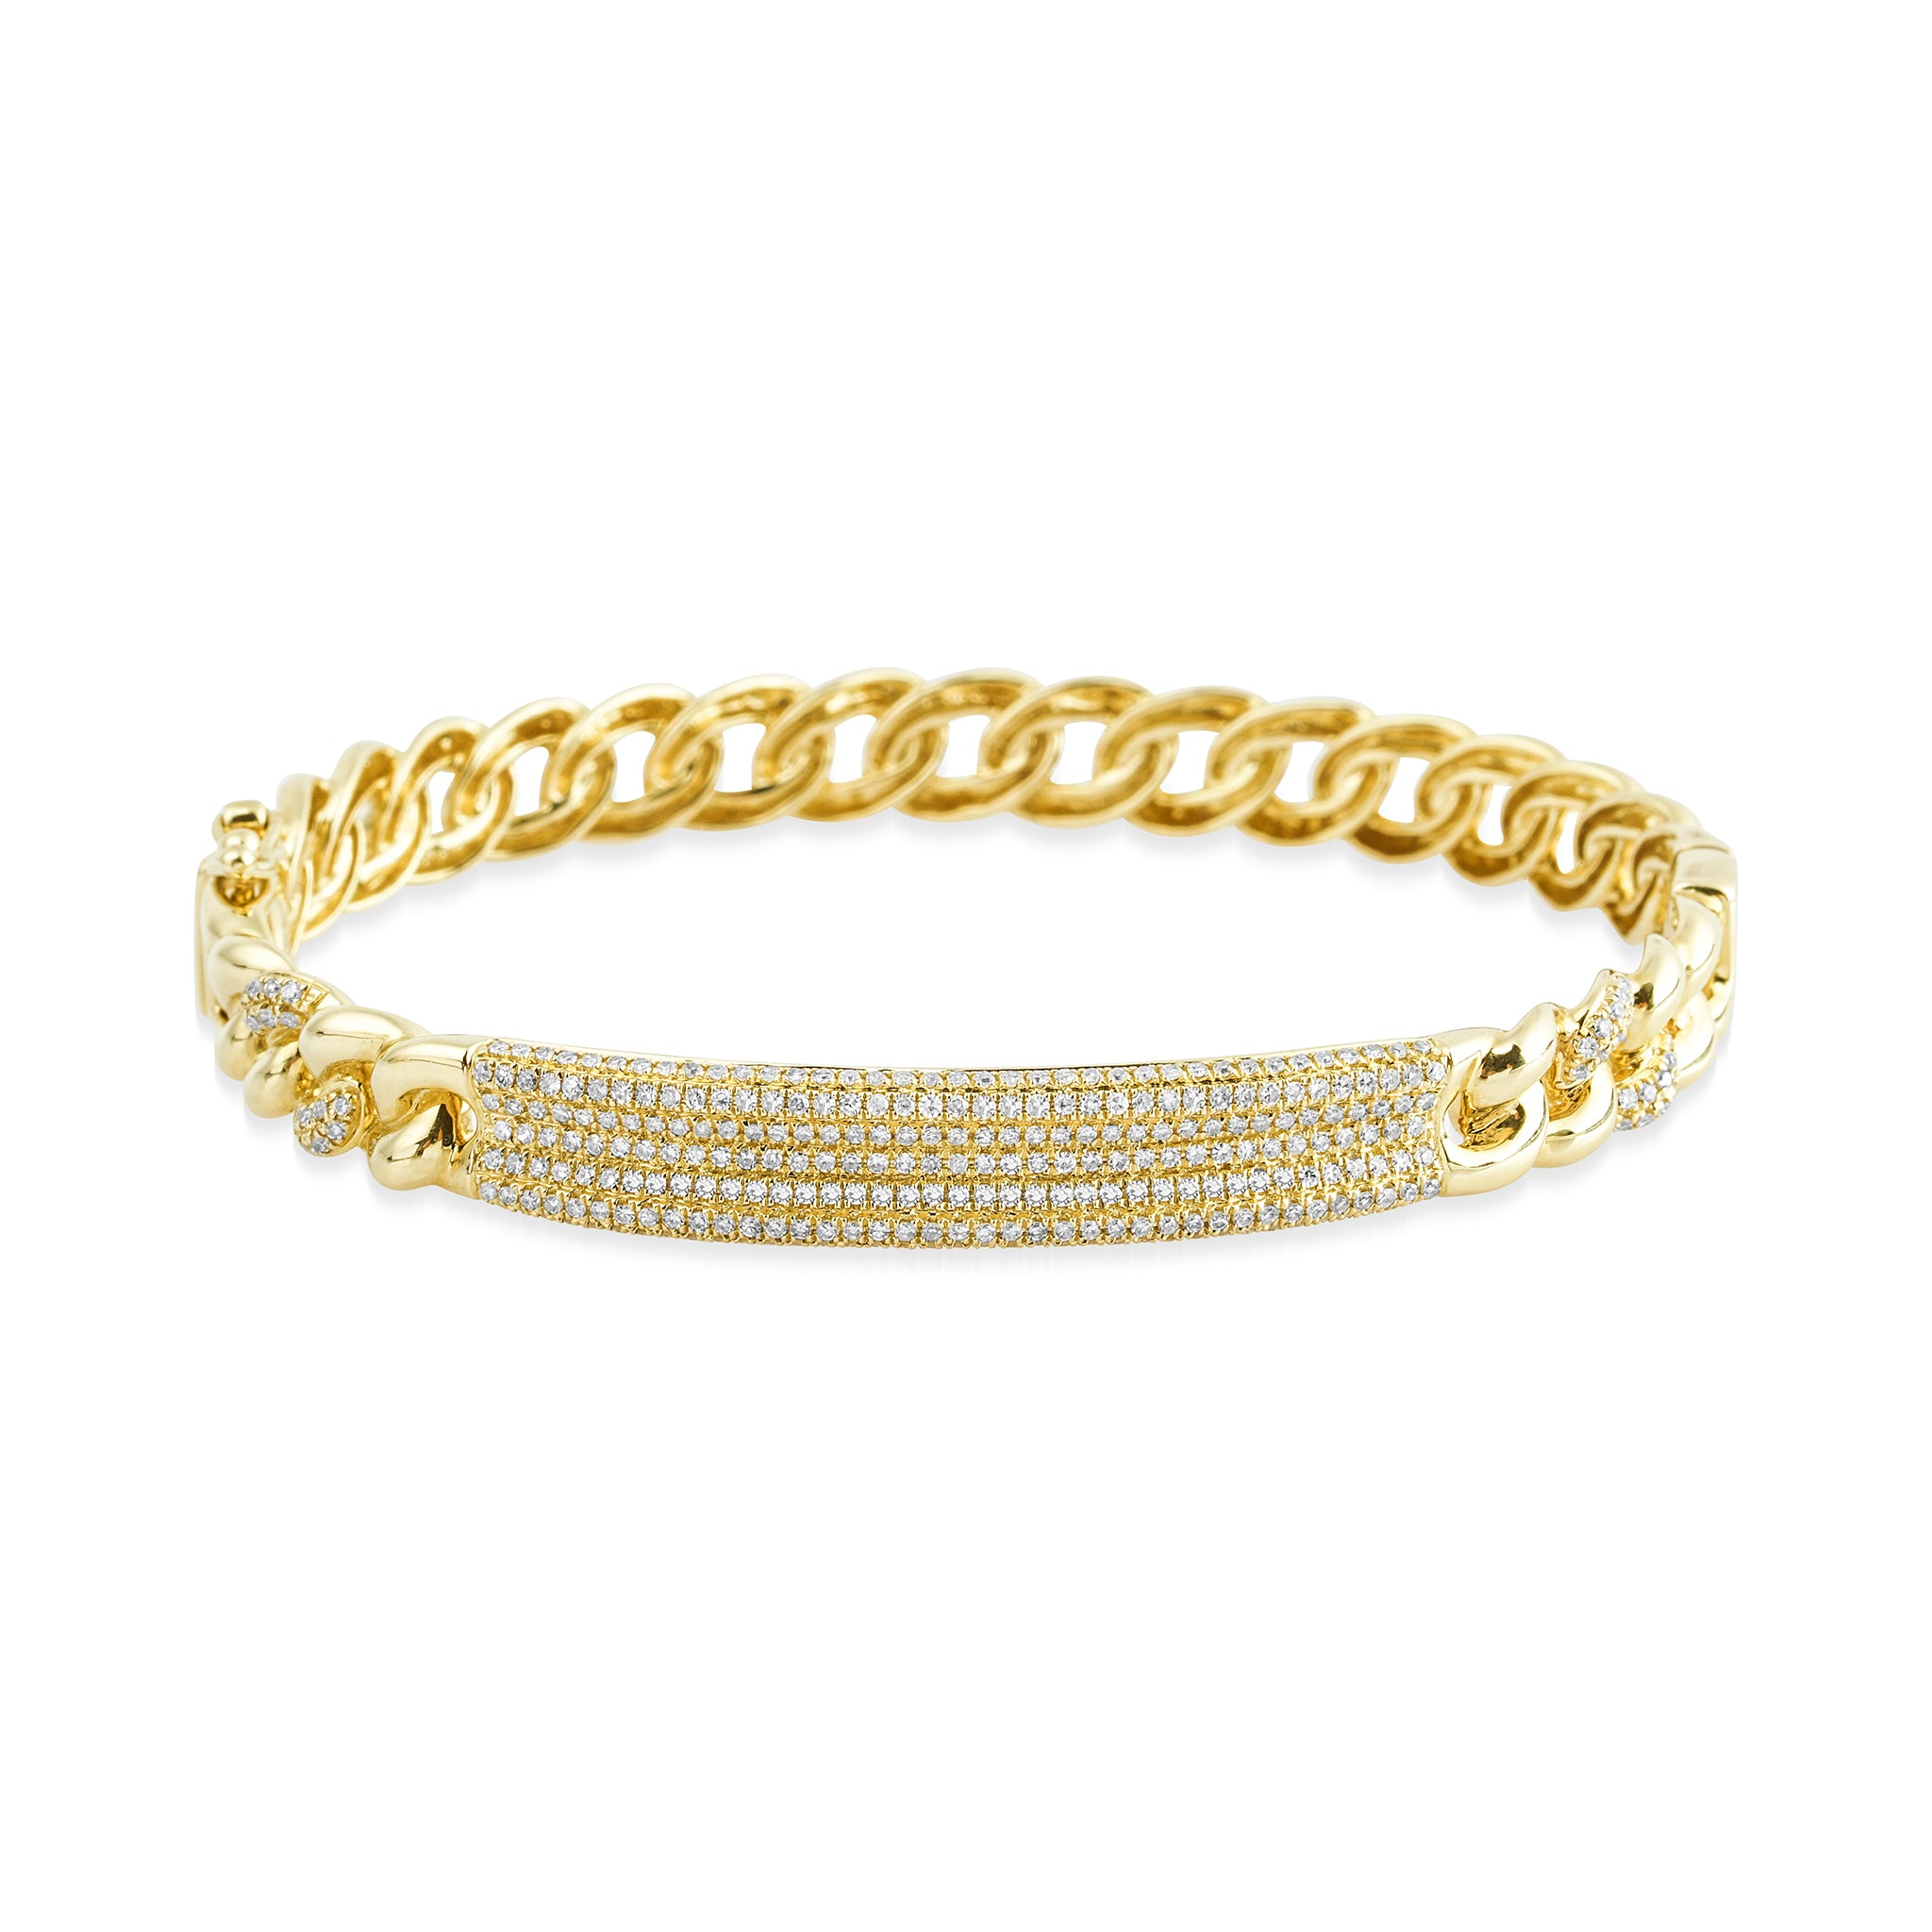 14 KT Gold Diamond Bar Link Bangle Bracelet, NEW - DilaraSaatci